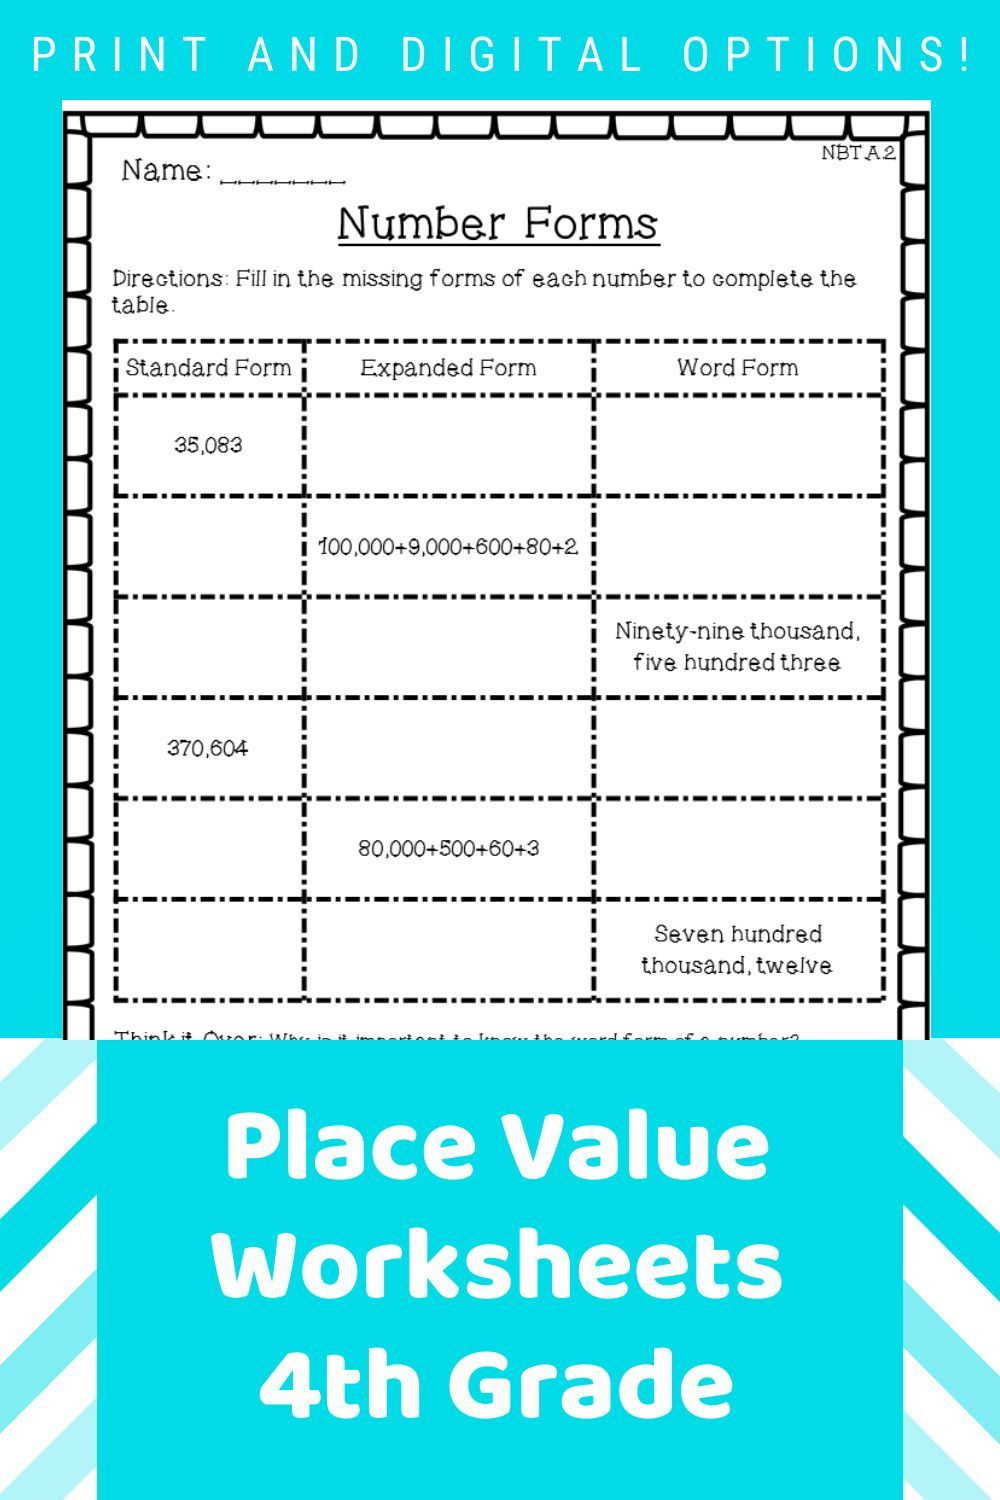 4th Grade Place Value Worksheets ~ Distance Learning Digital Option   Place  value worksheets [ 1500 x 1000 Pixel ]